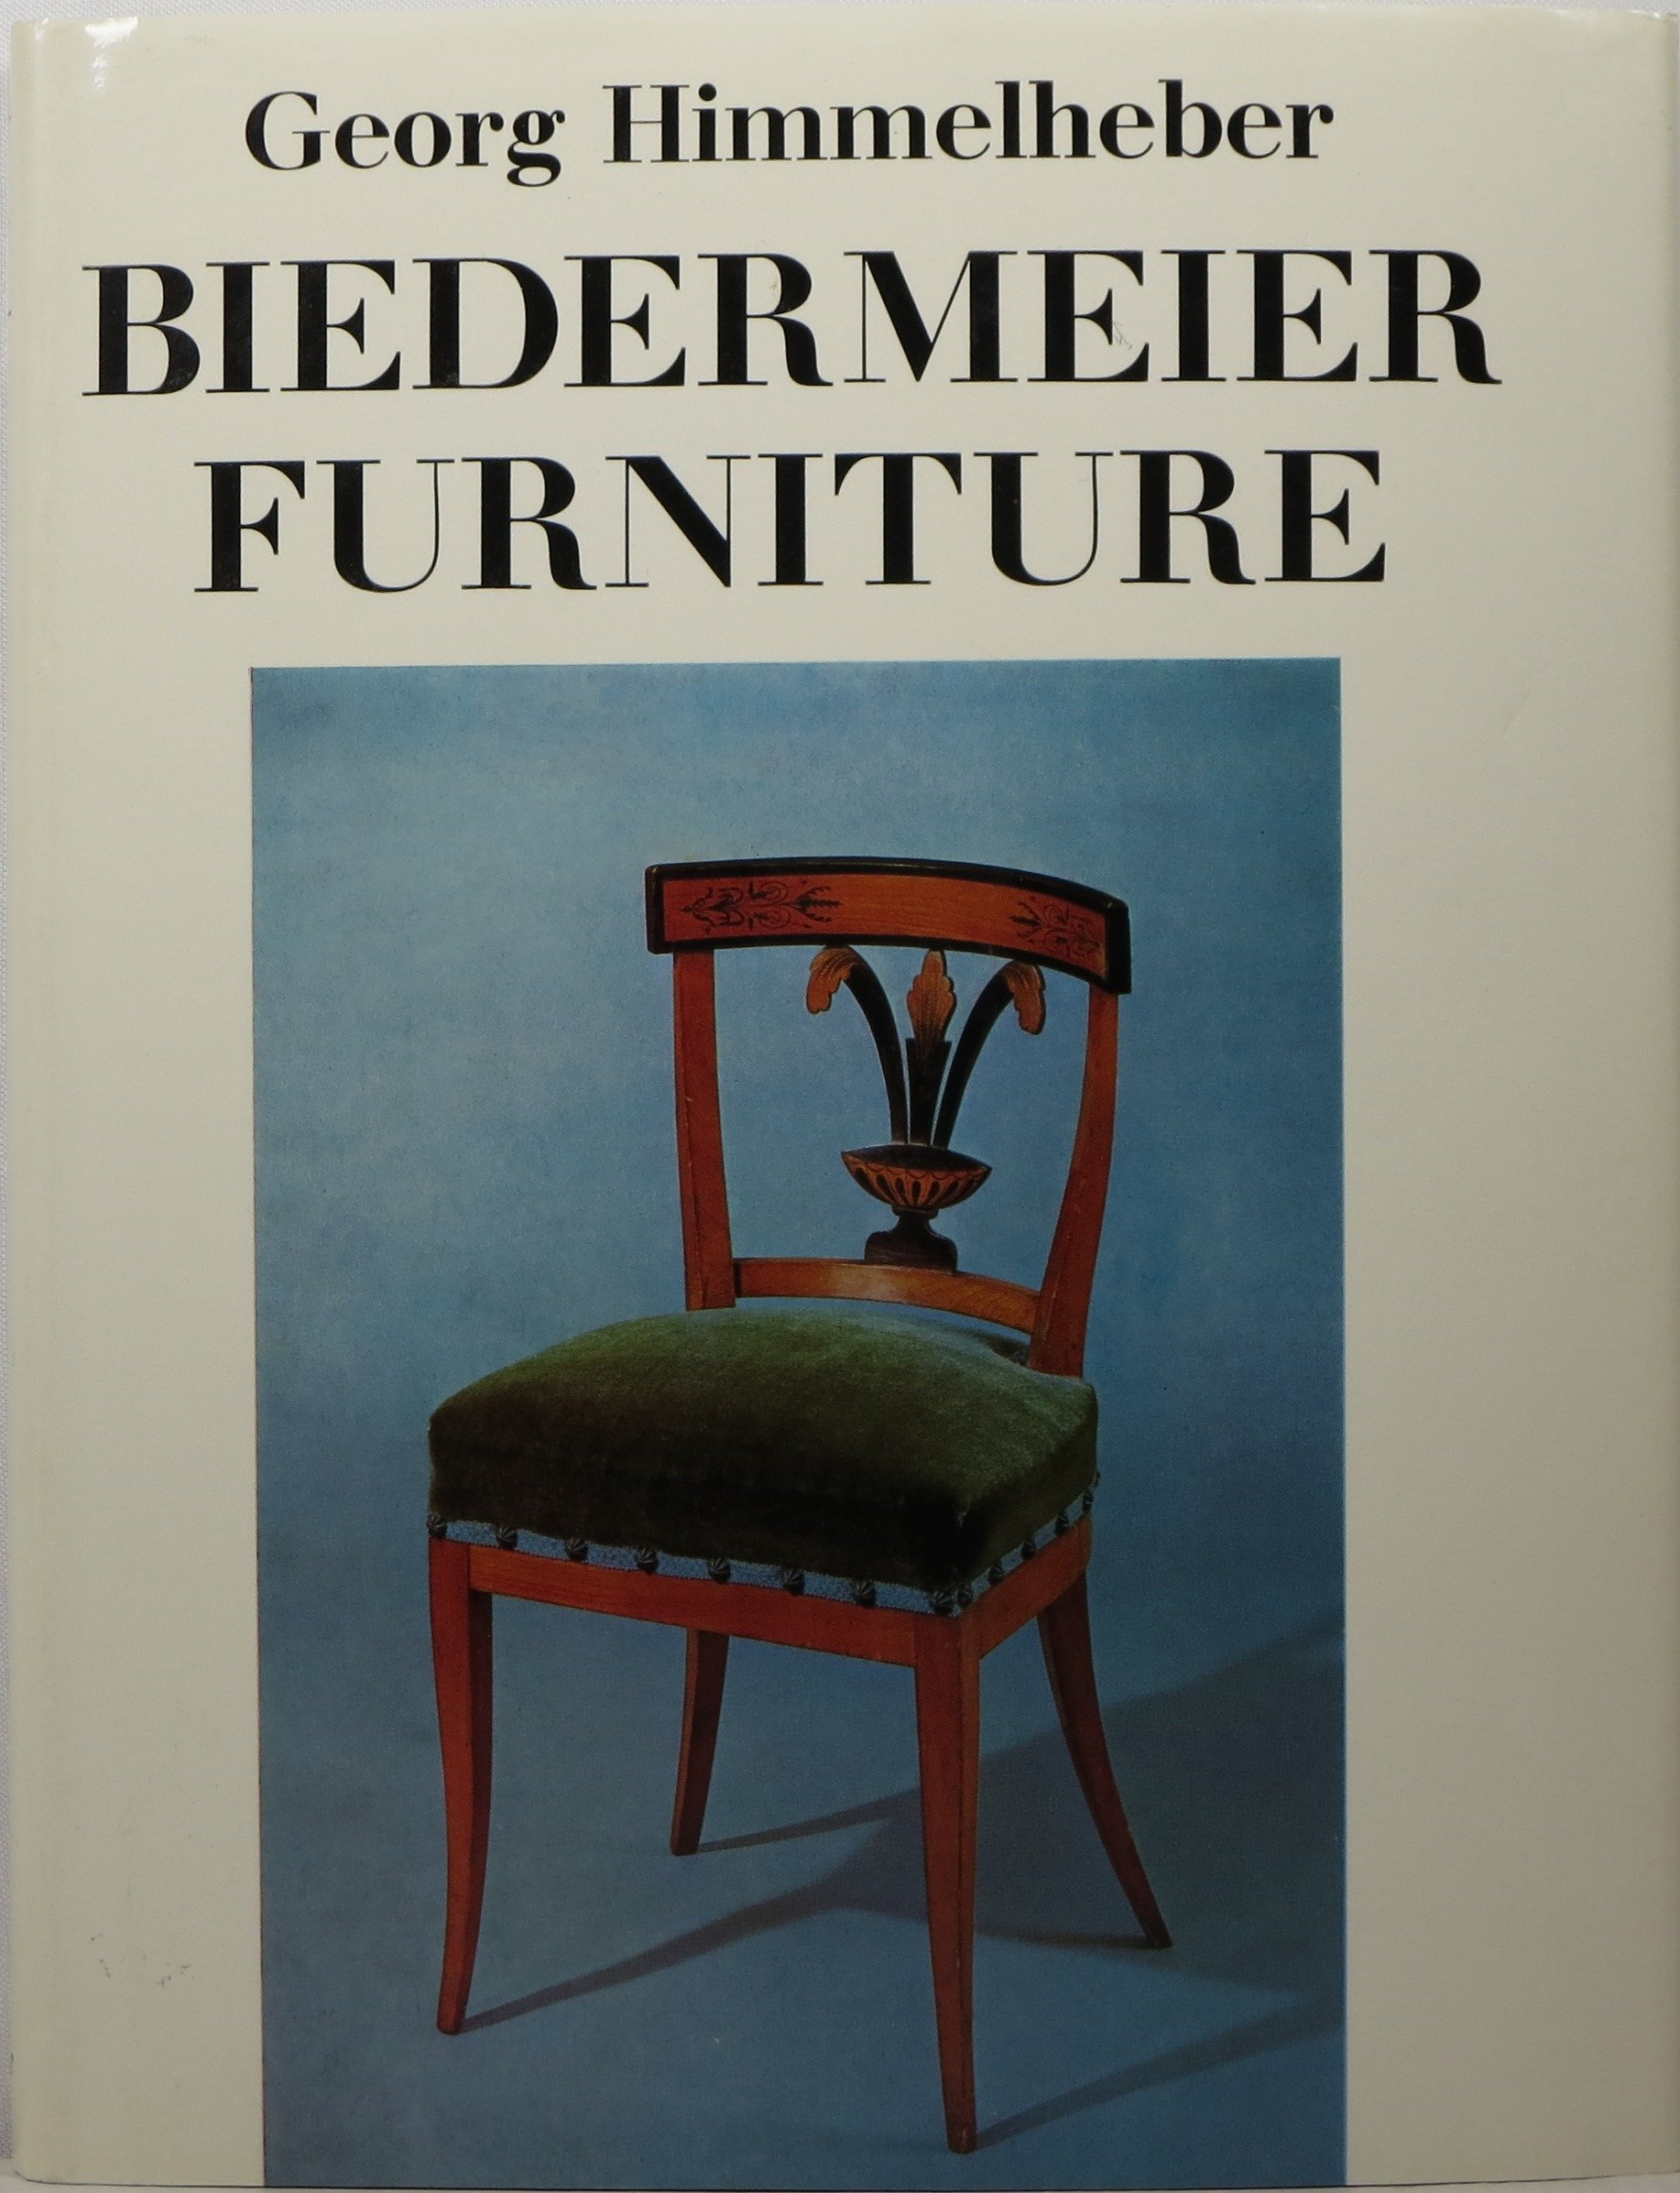 Biedermeier Furniture (Monographs On Furniture): Georg Himmelheber, S.  Jervis: 9780571087198: Amazon.com: Books